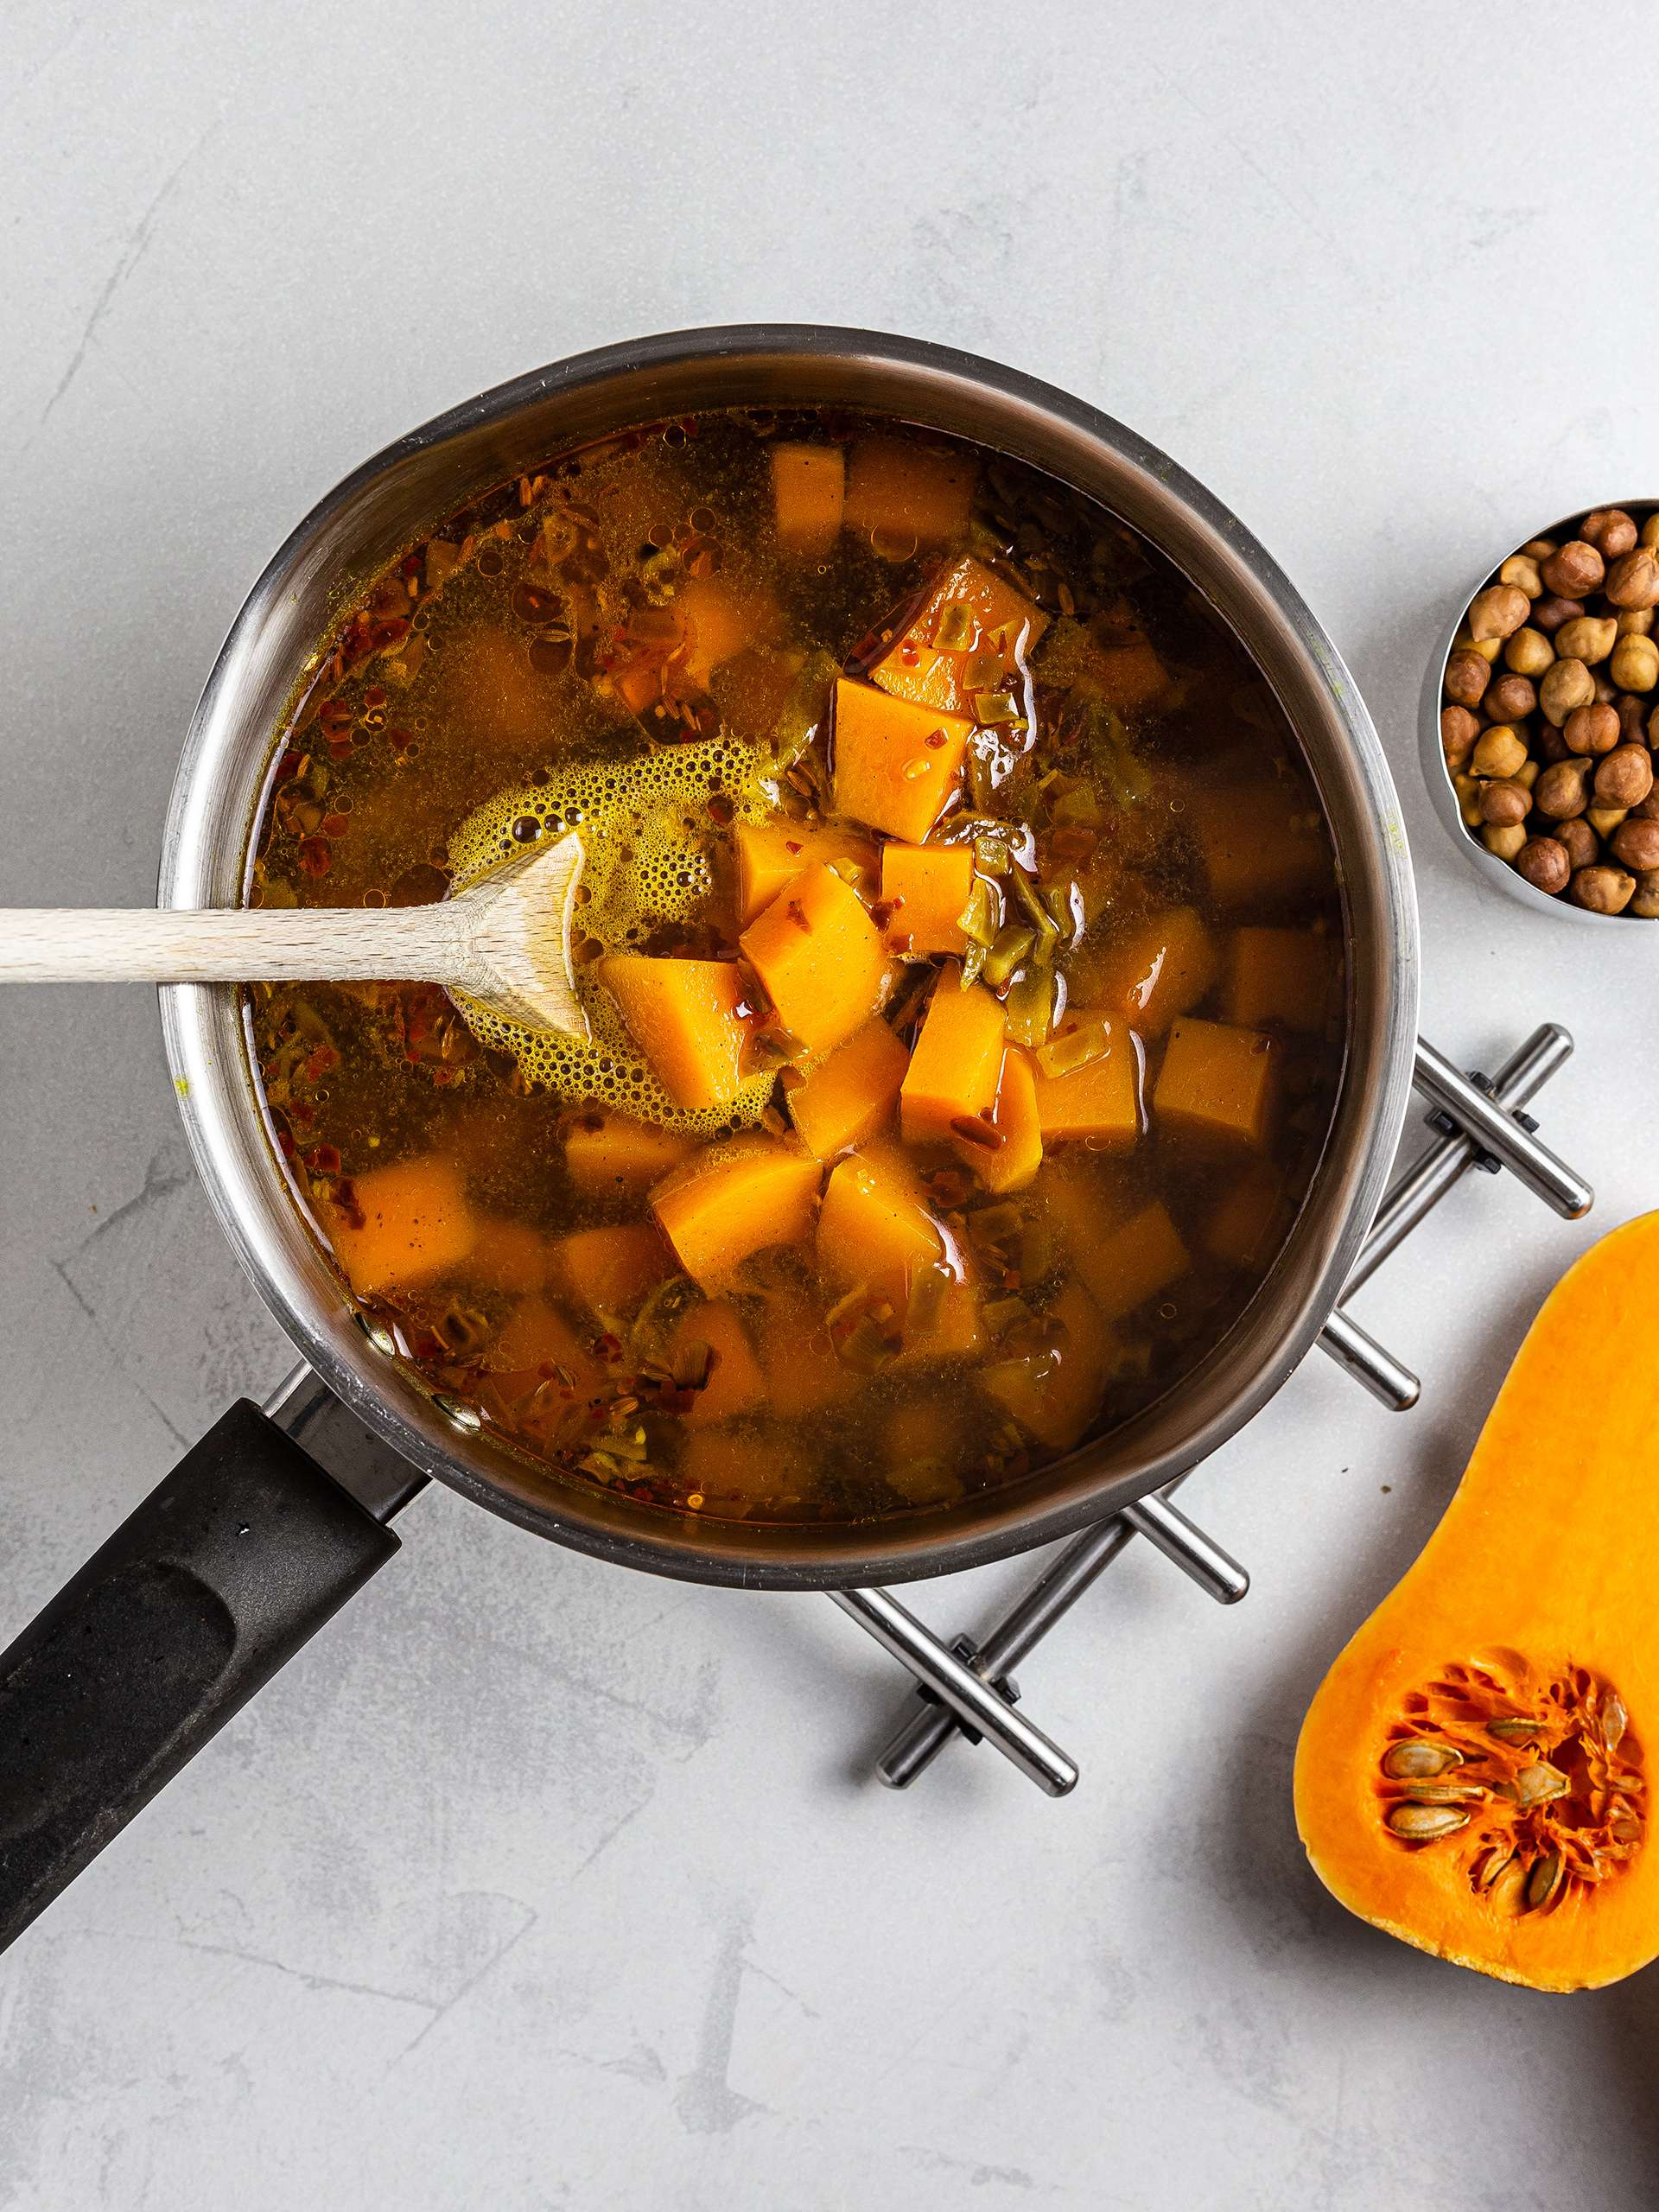 Pumpkin and chickpeas in a pot